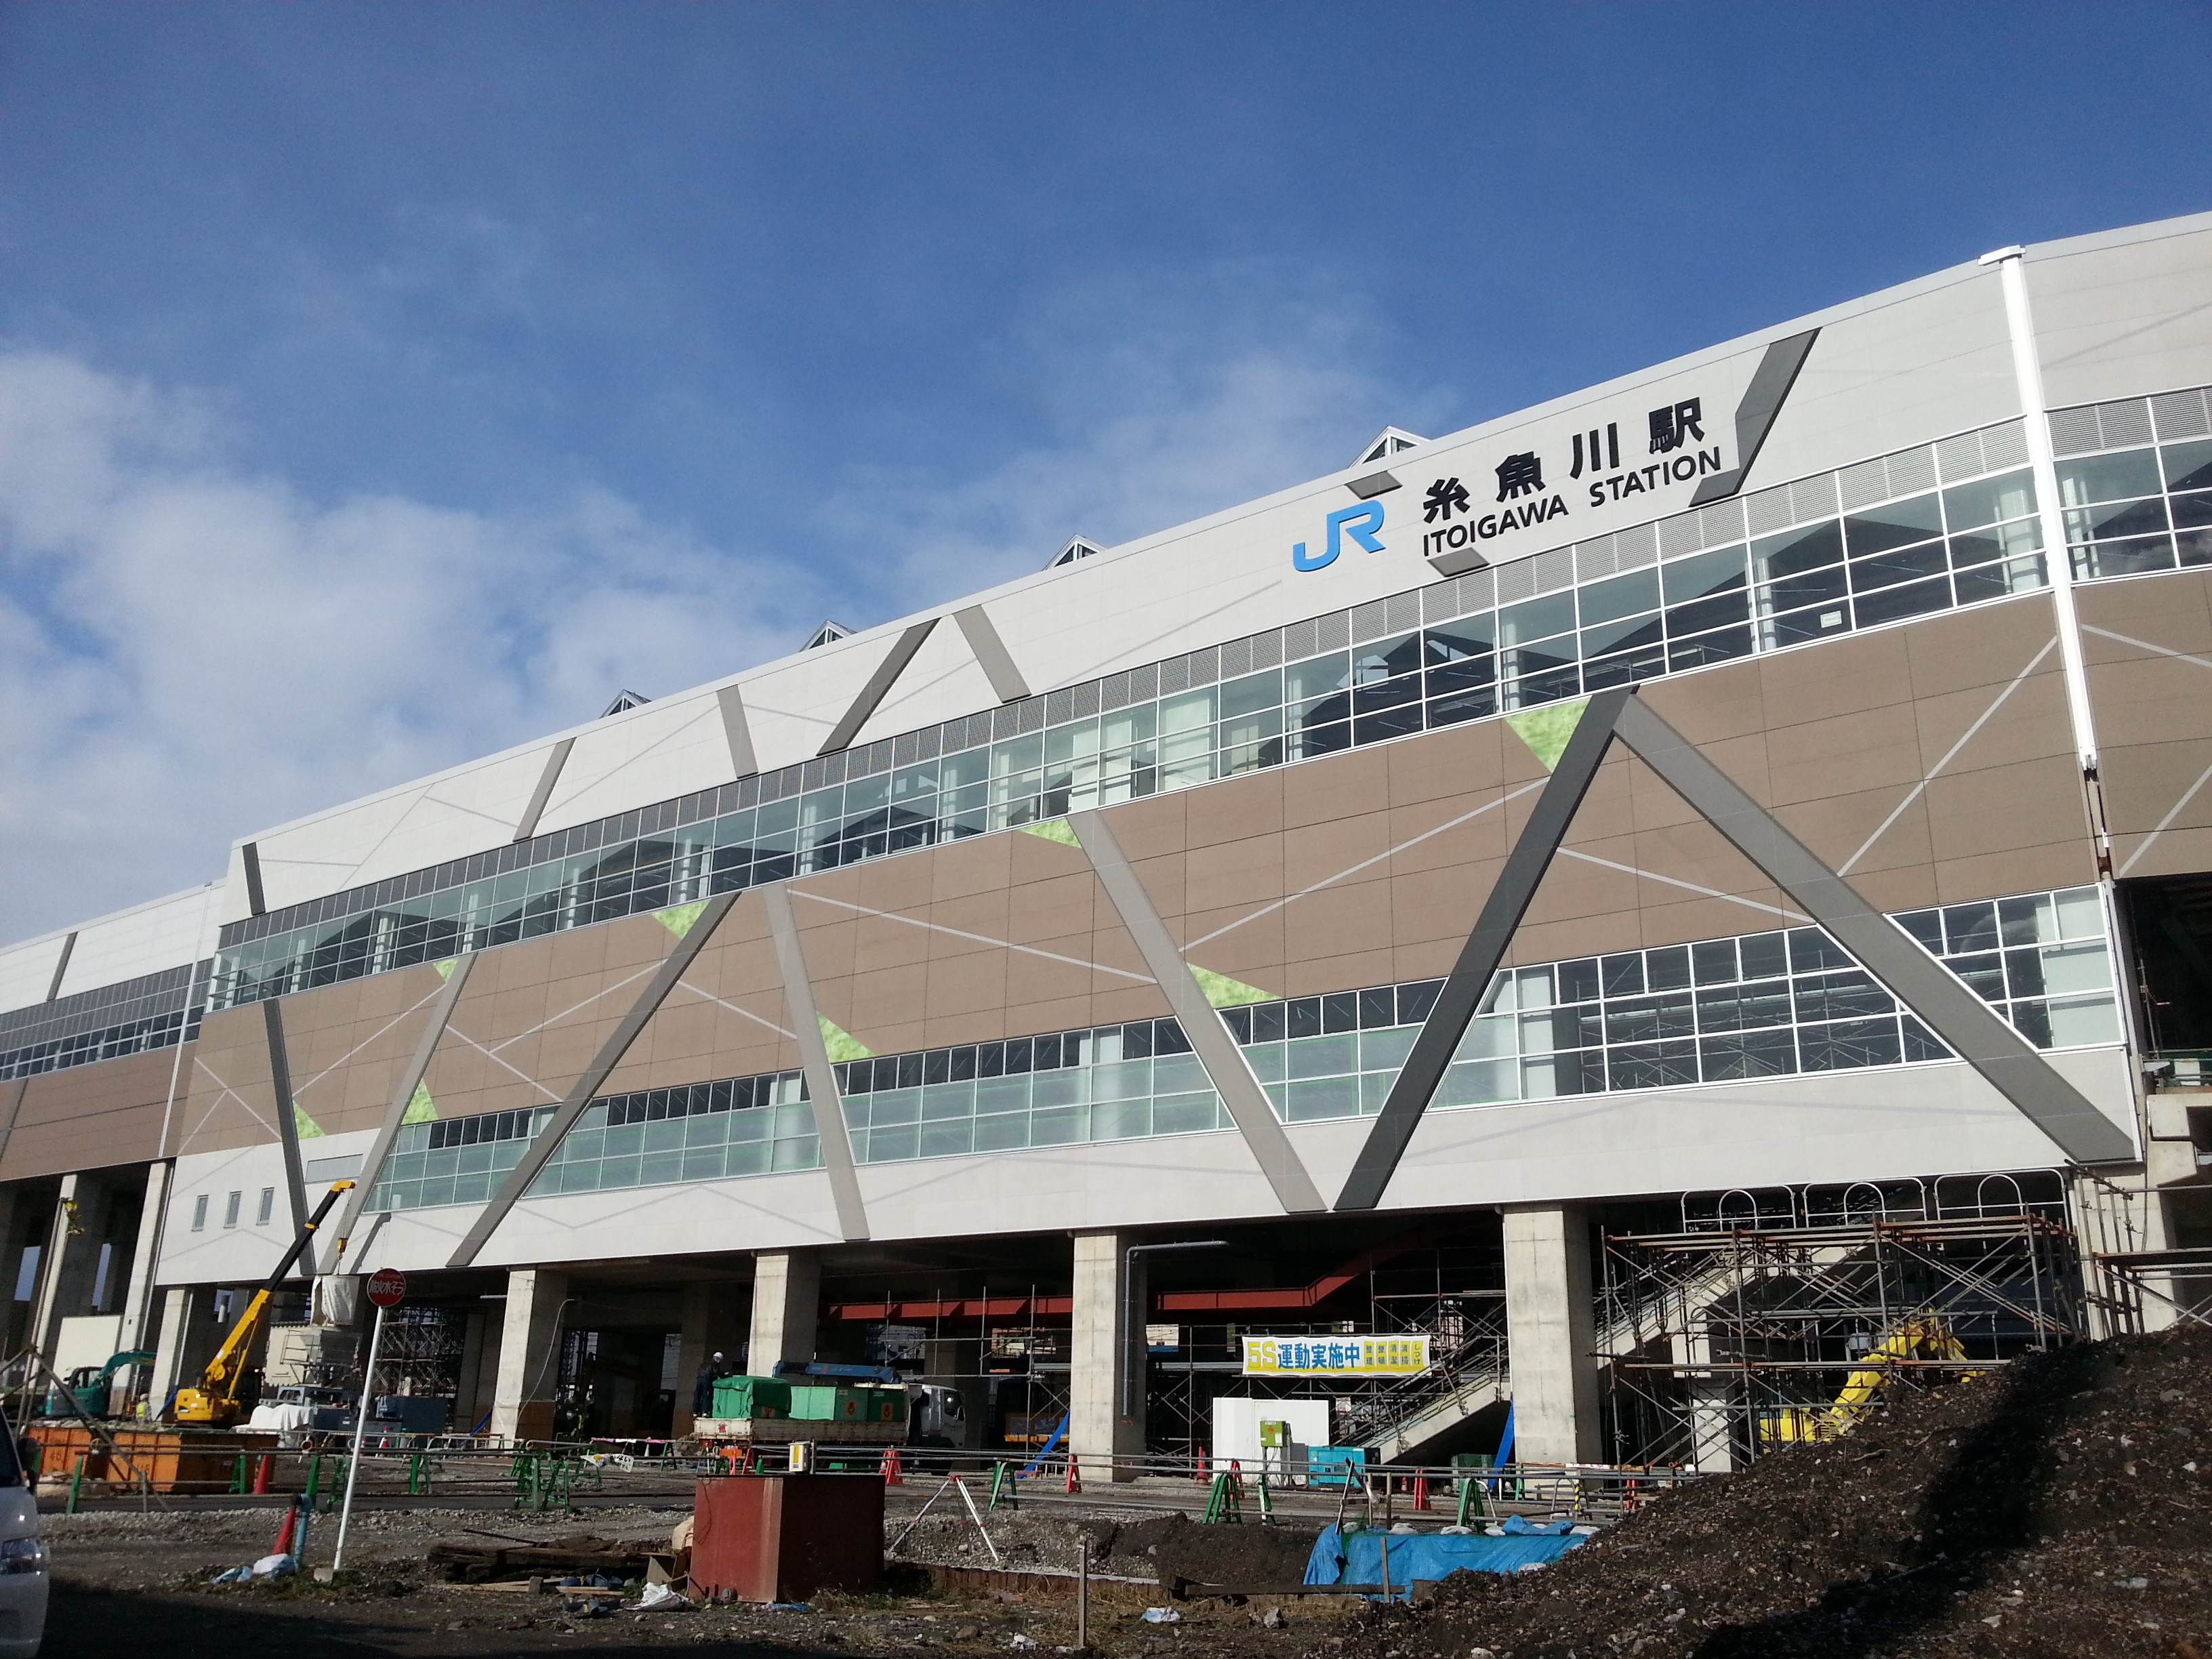 The JR Itoigawa Station South Entrance and Shinkansen Building